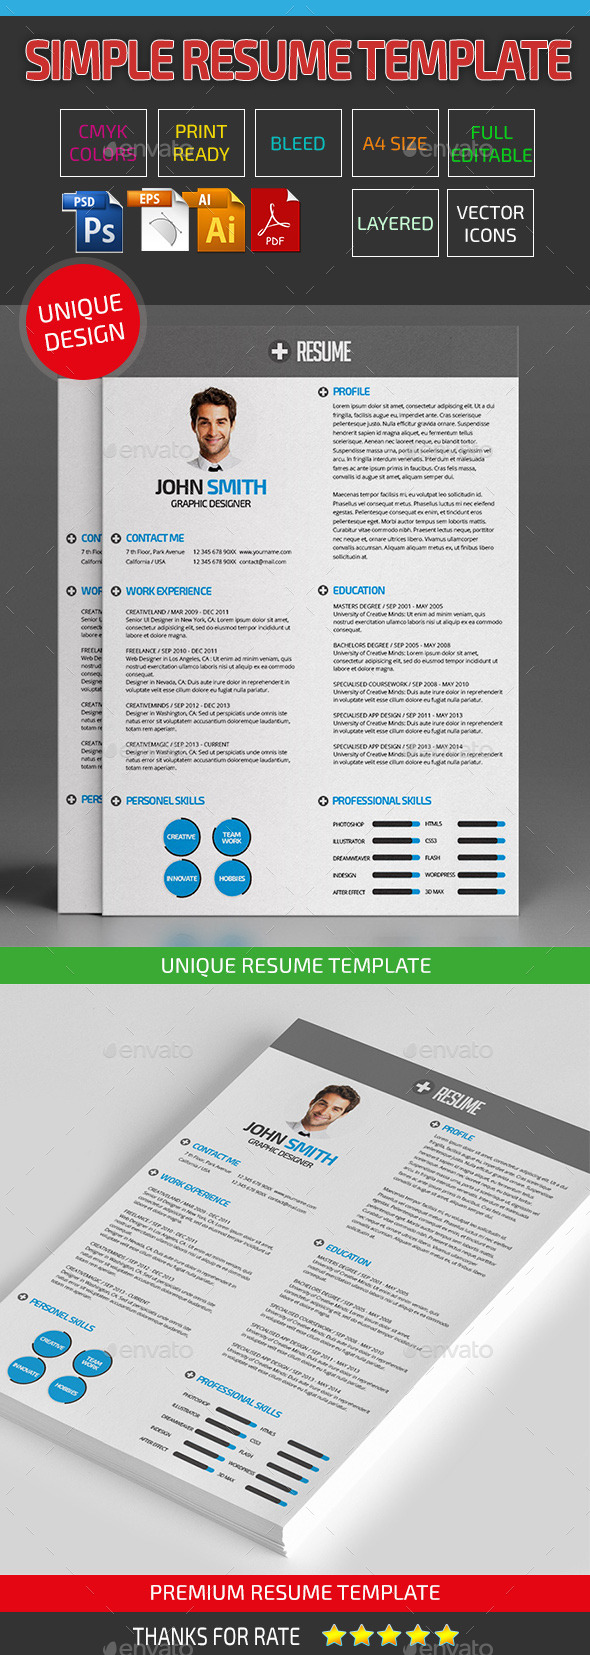 Simple Resume Template 21